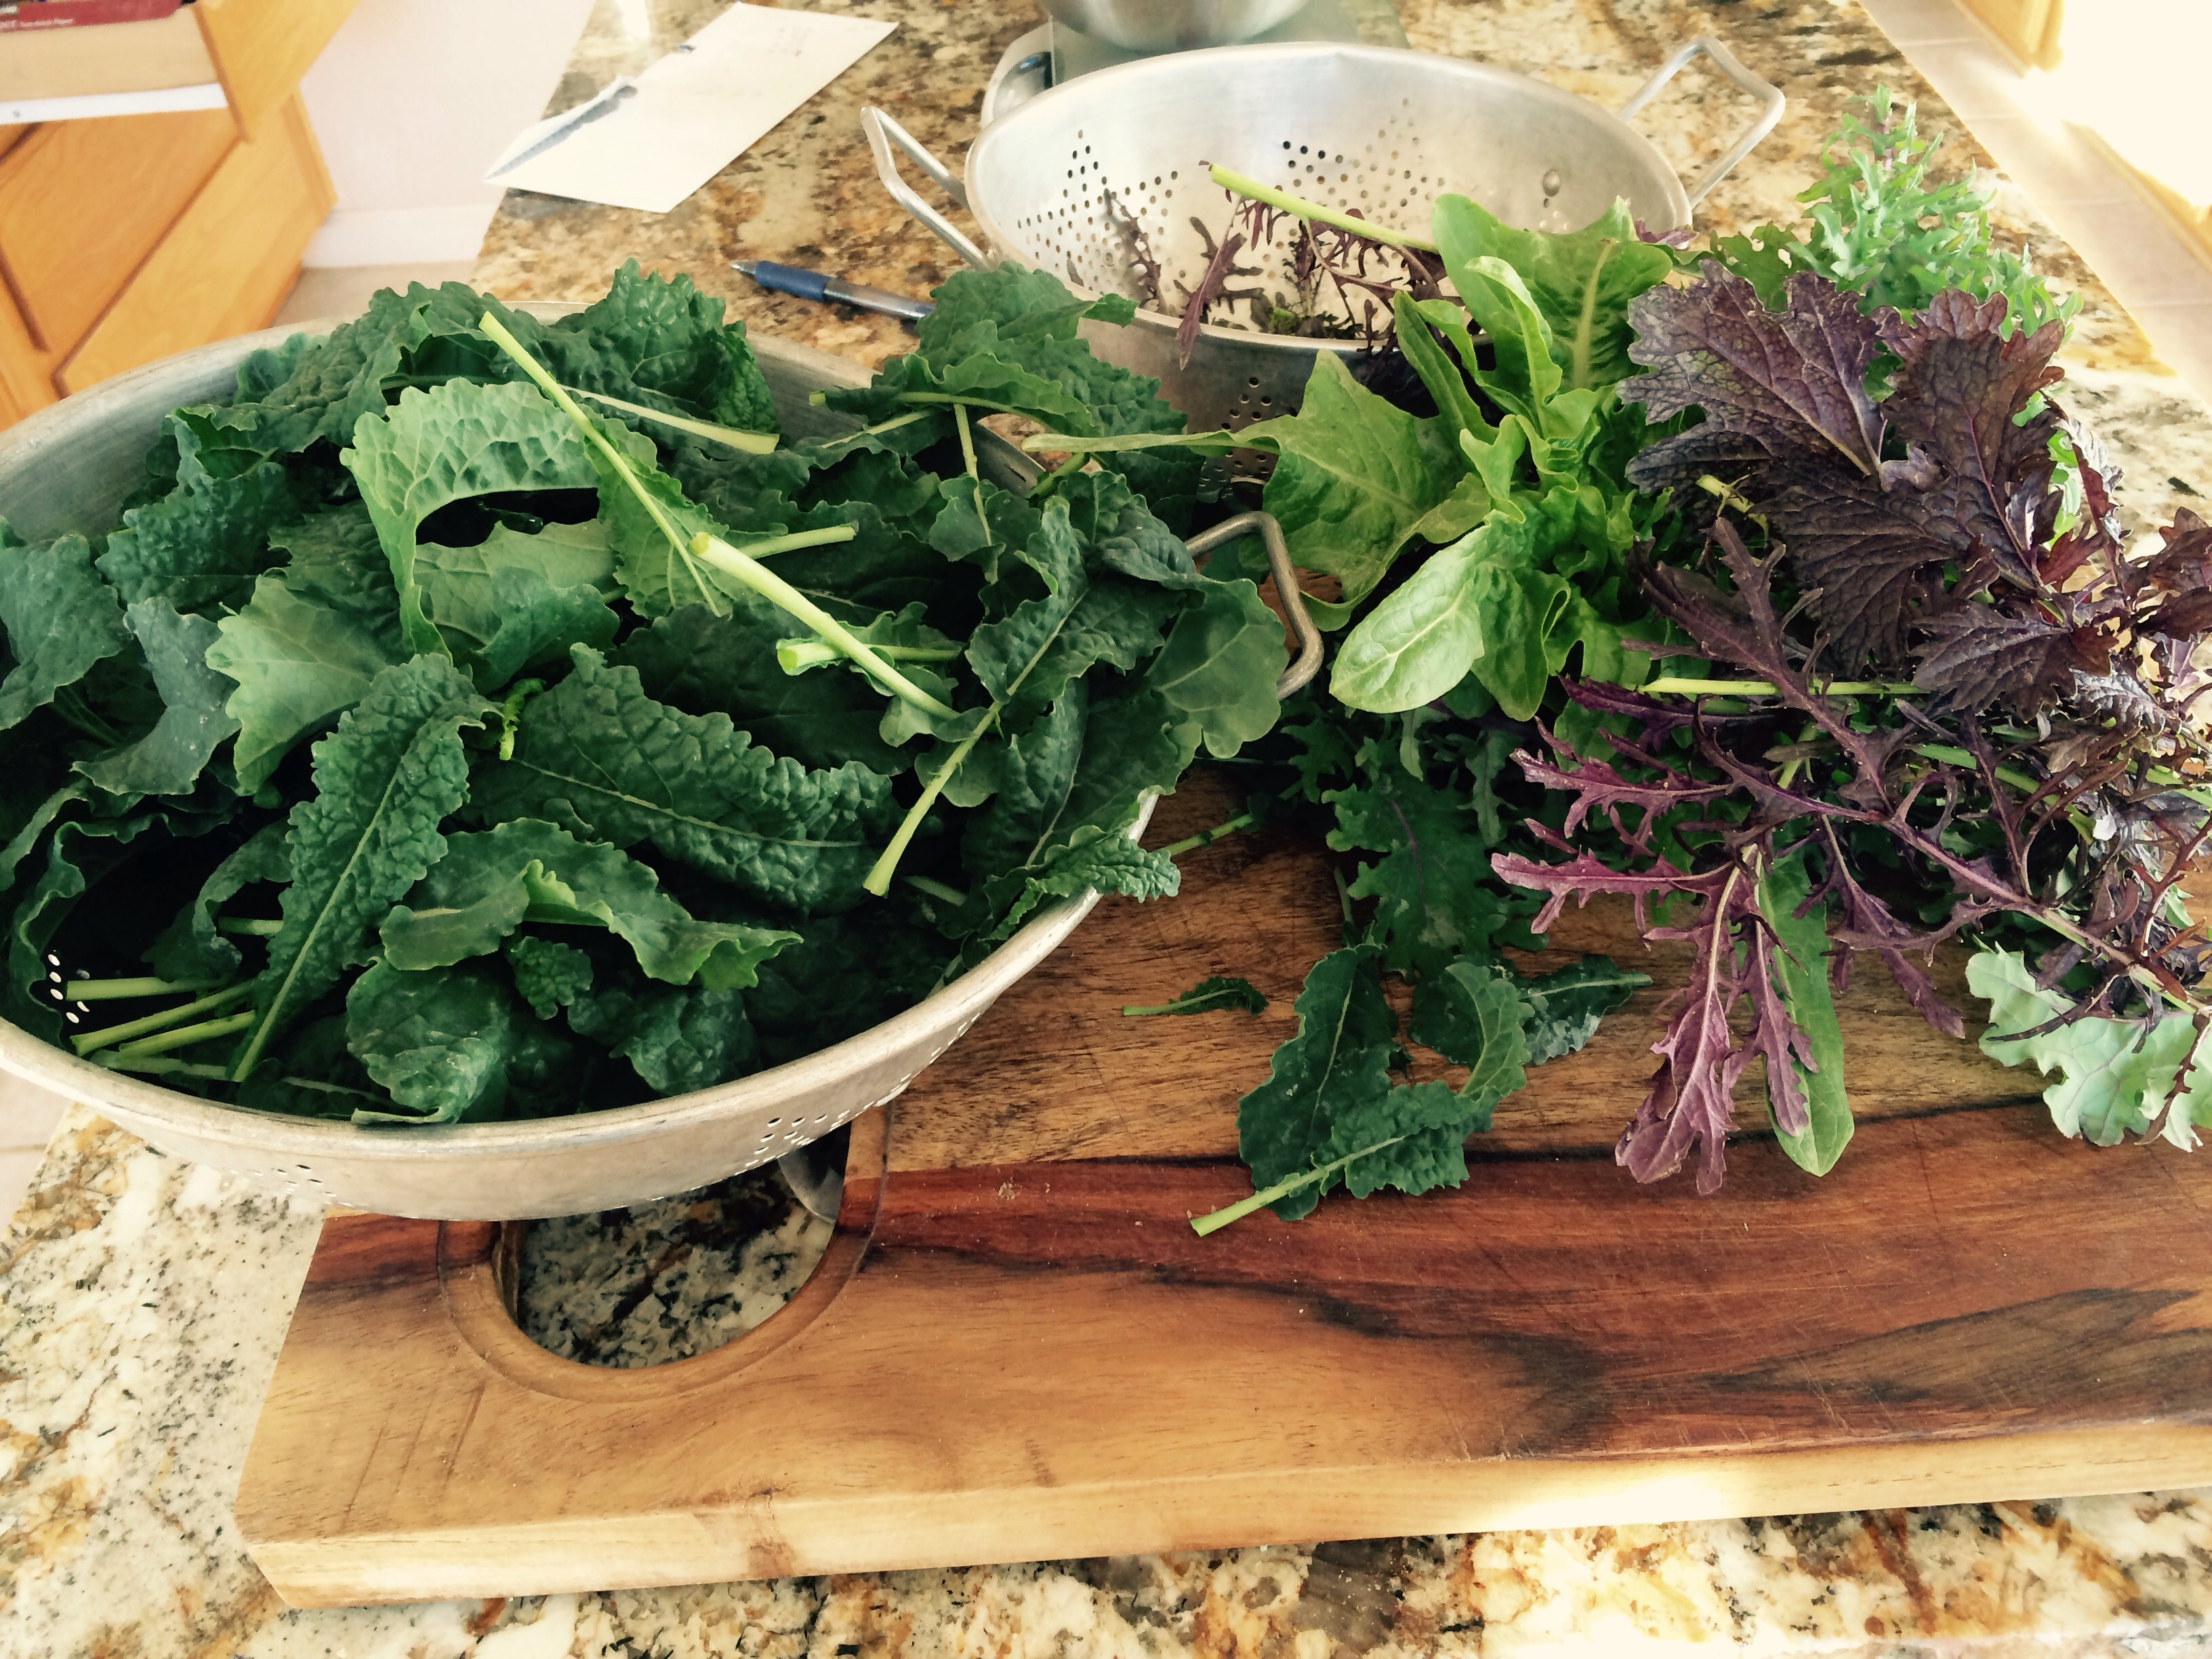 Chef Susan ordered fresh farm winter greens and pastured eggs keeping it local